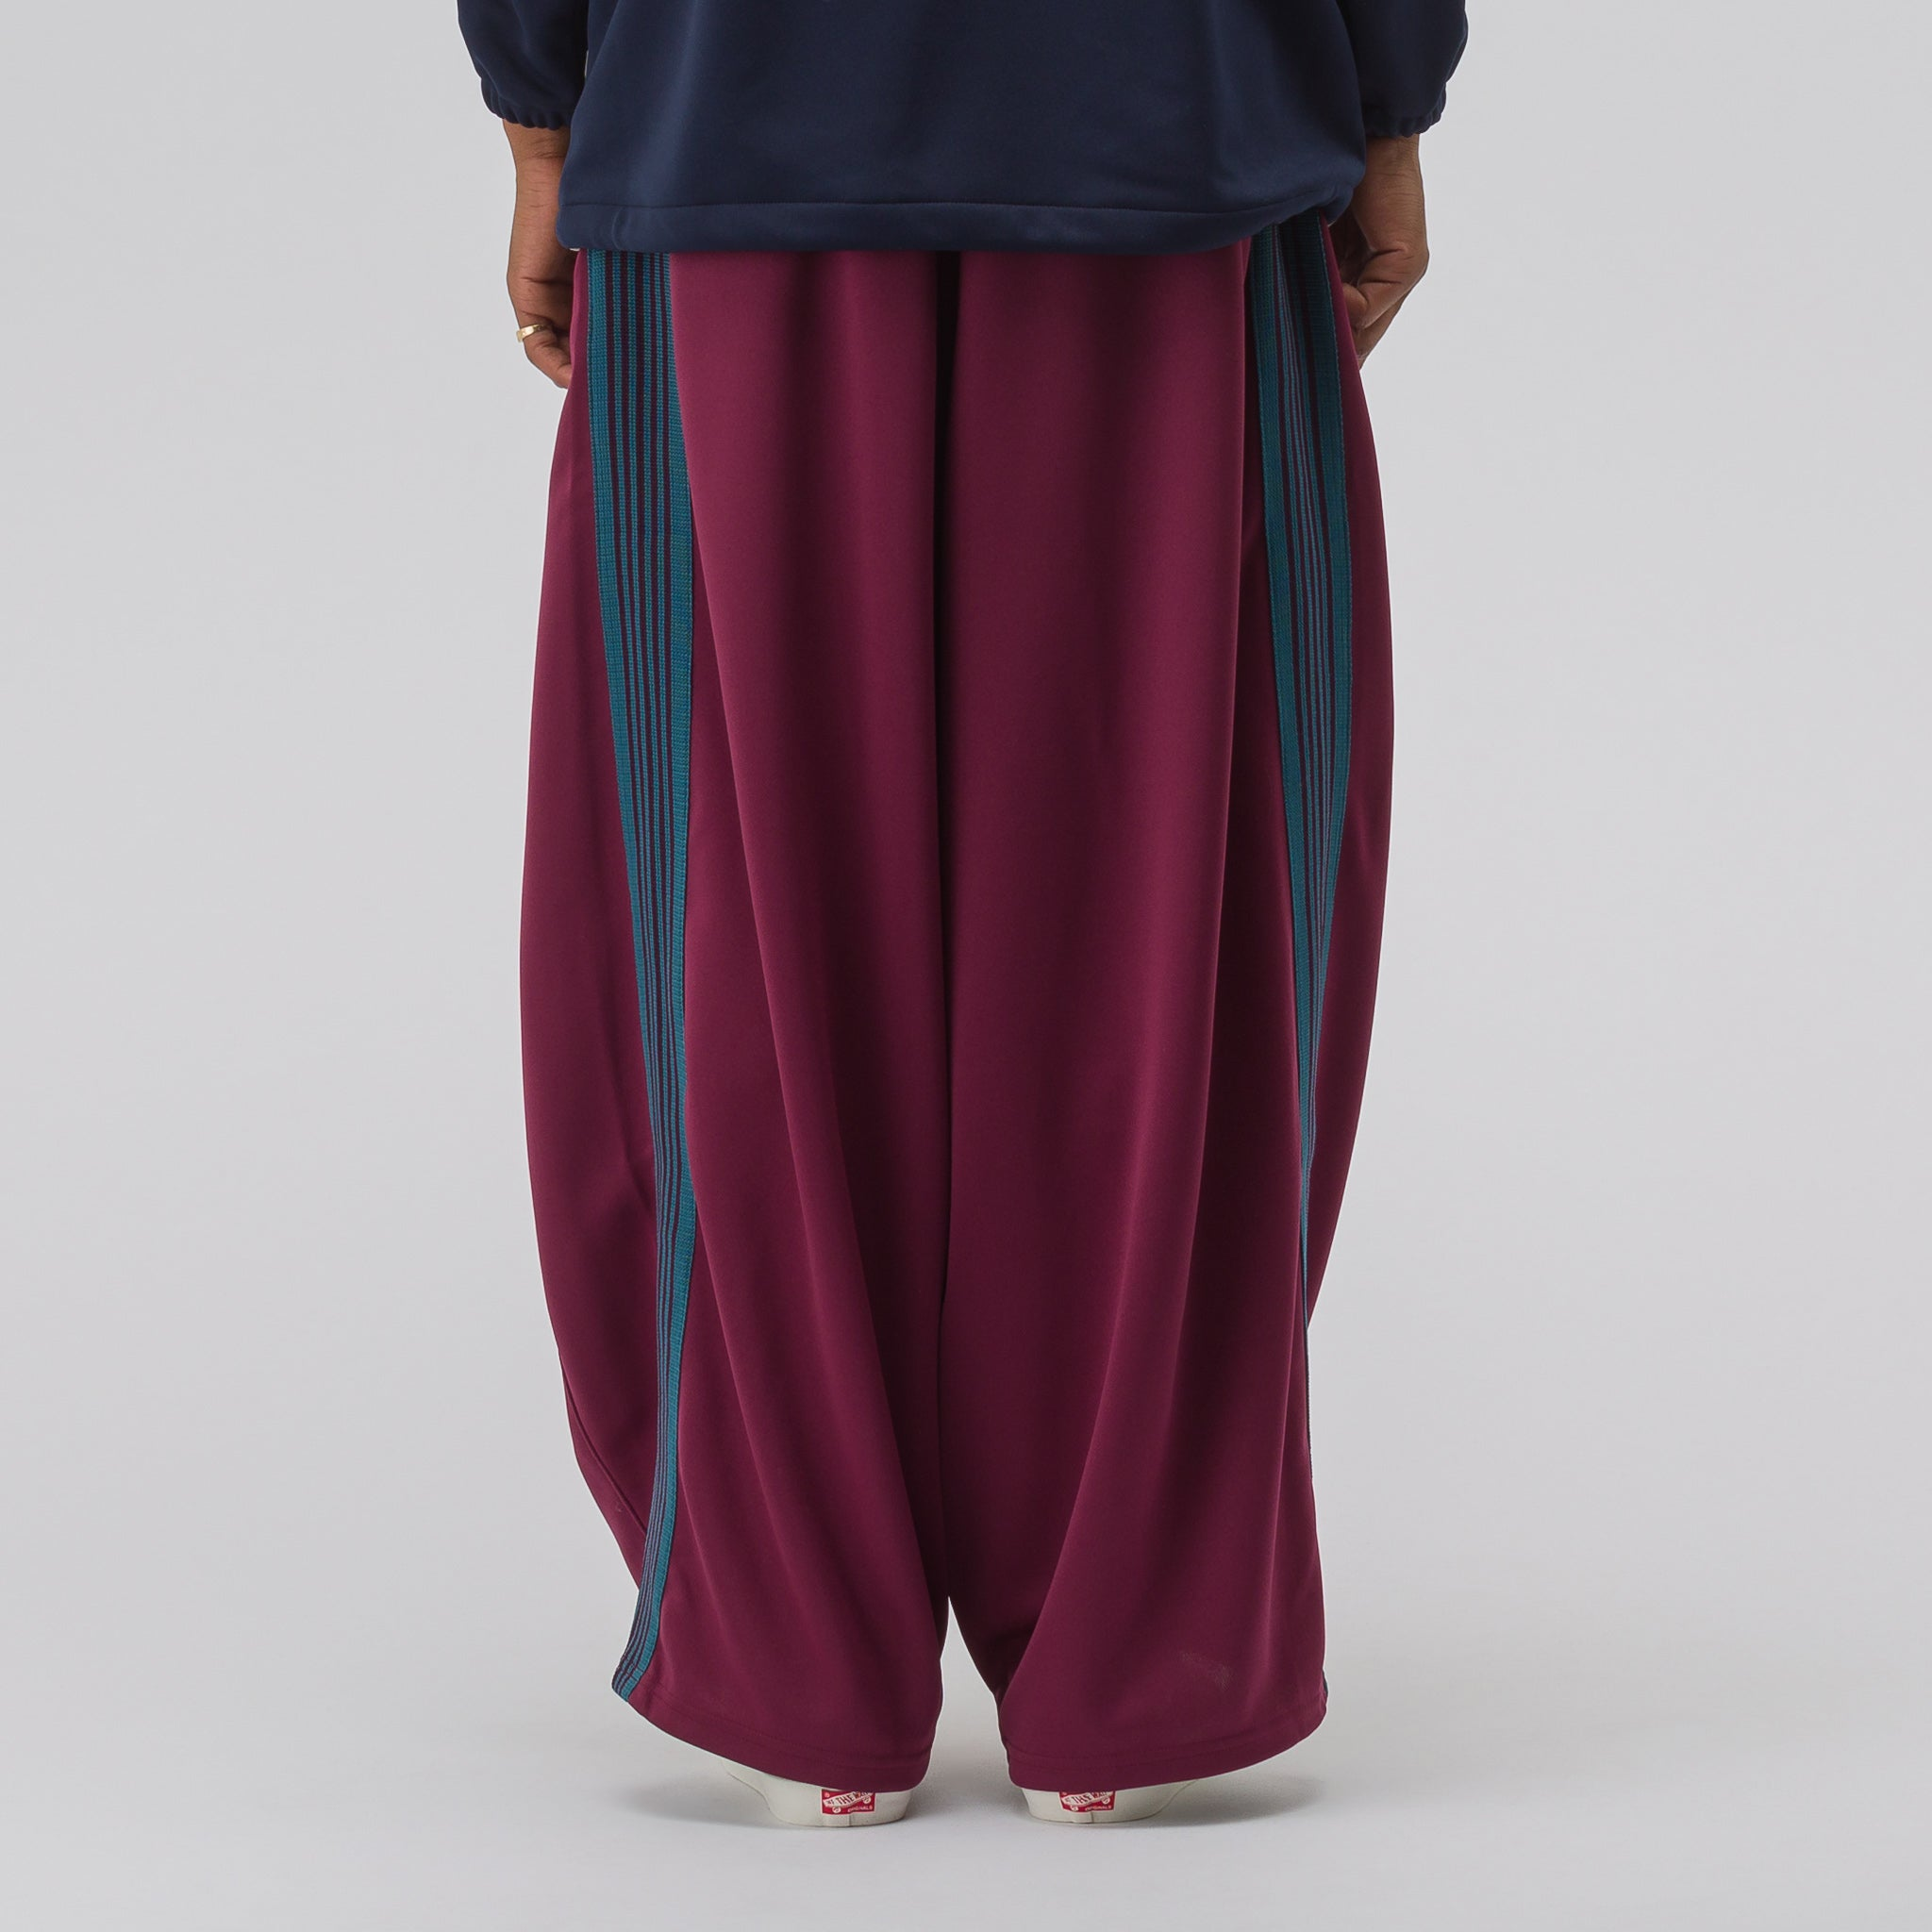 HD Poly Smooth Track Pant in Maroon